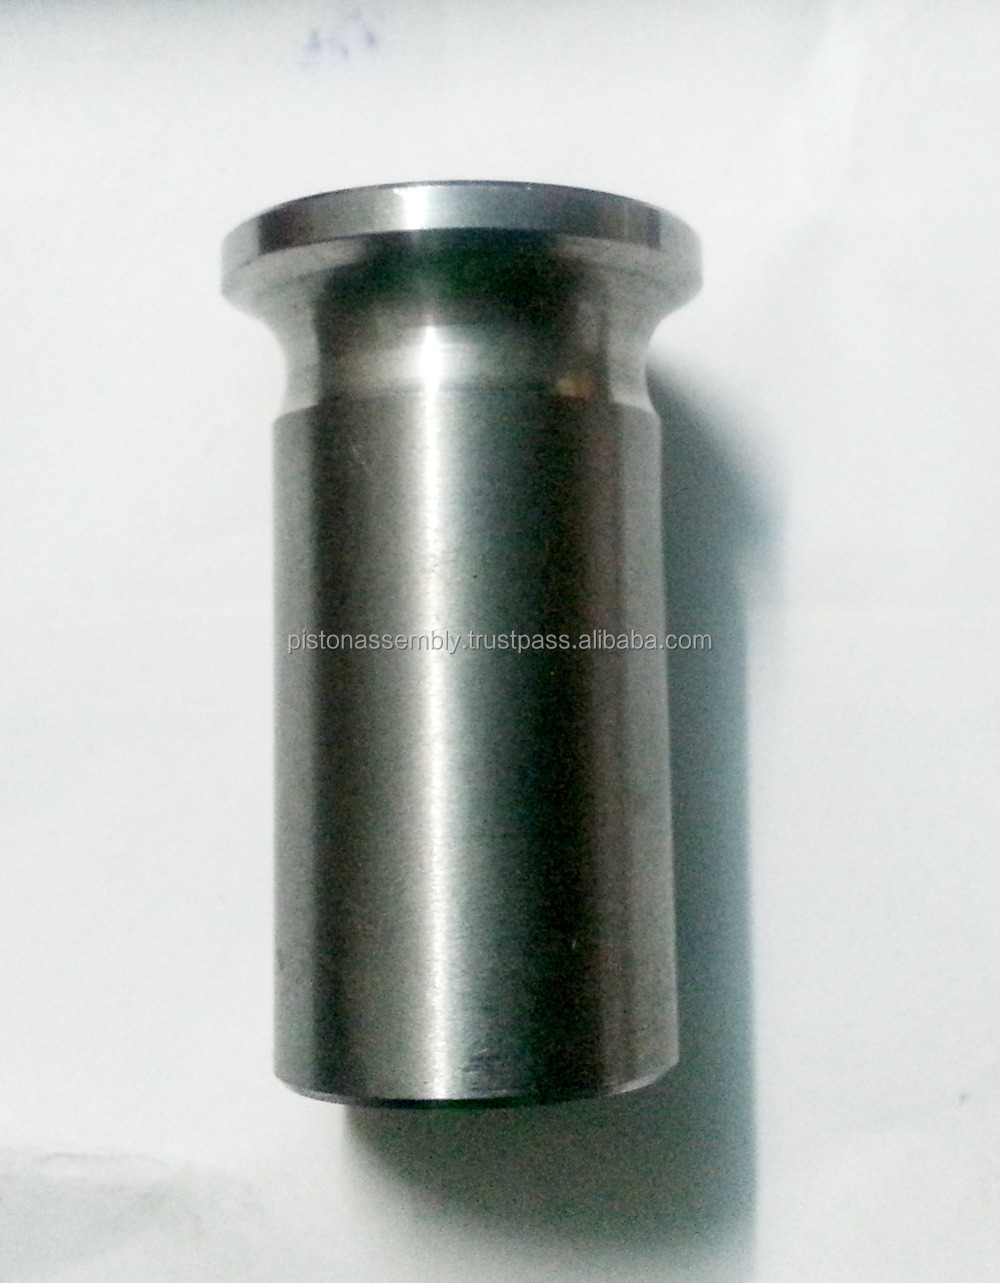 JCB Earthmoving Spare Parts	1025-2020	PIVOT PIN